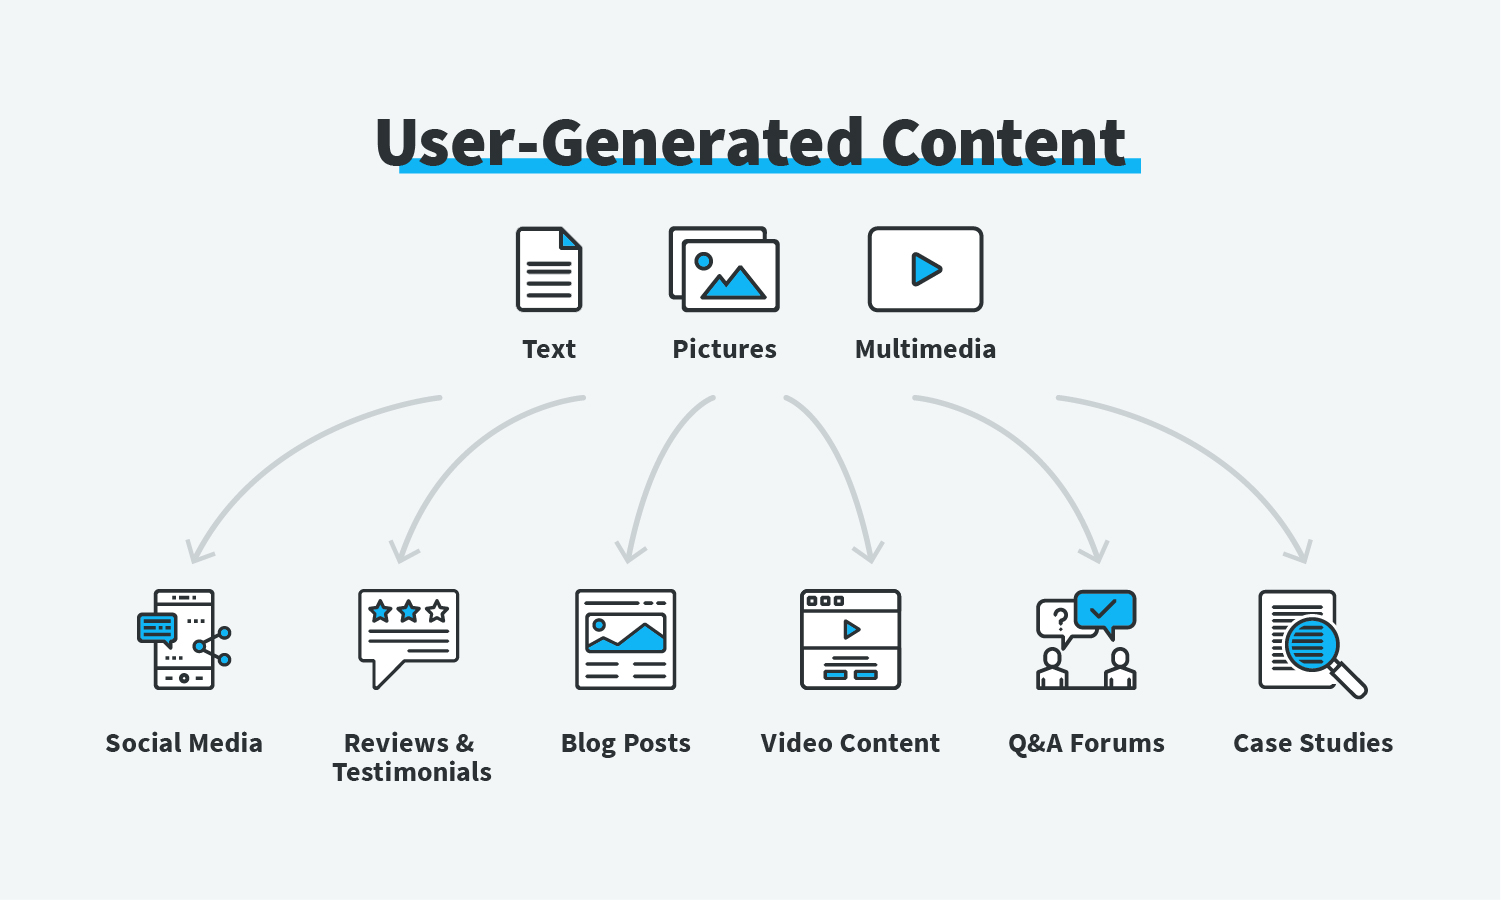 Types of user-generated content